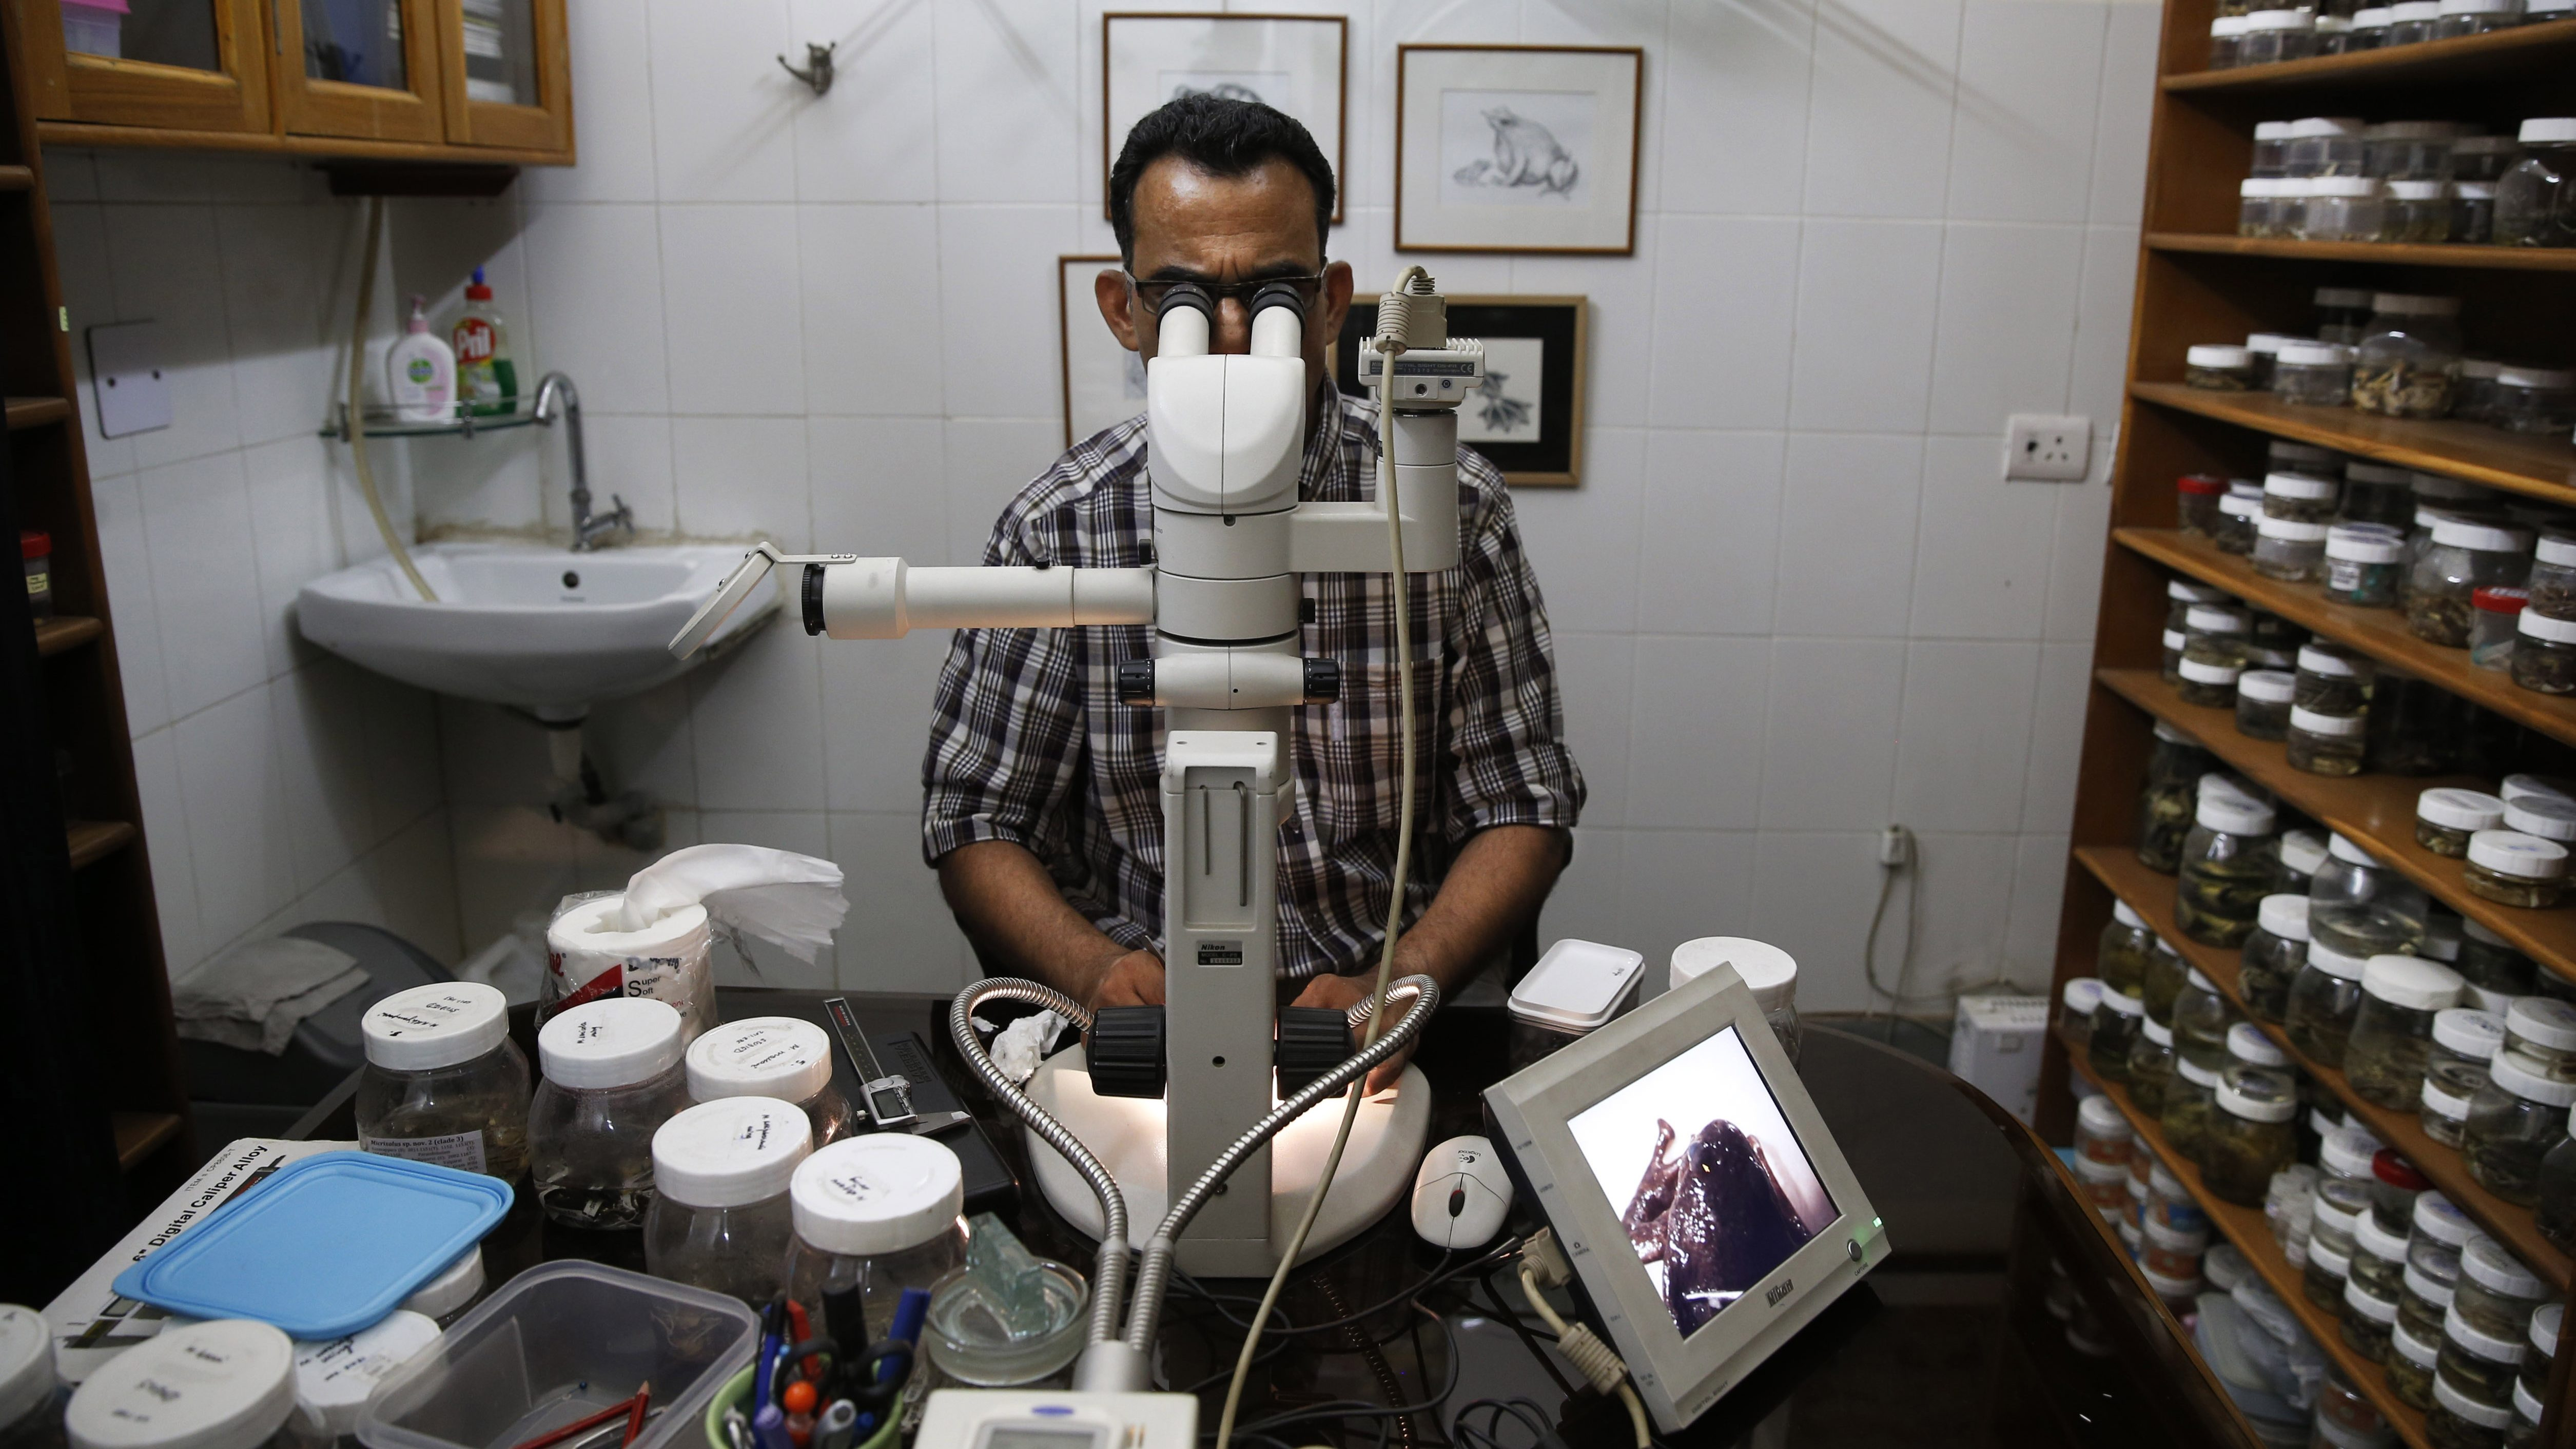 In this Thursday, May 1, 2014 photo, University of Delhi professor Sathyabhama Das Biju, lead scientist of a project that has discovered 14 new species of so-called dancing frogs in the jungle mountains of southern India, looks through an electronic microscope as he studies a frog at his laboratory in New Delhi, India. The study listing the new species brings the number of known Indian dancing frogs to 24 and attempts the first near-complete taxonomic sampling of the single-genus family found exclusively in southern India's lush mountain range called the Western Ghats, which stretches 1,600 kilometers (990 miles) from the west state of Maharashtra down to the country's southern tip. (AP Photo/Saurabh Das)